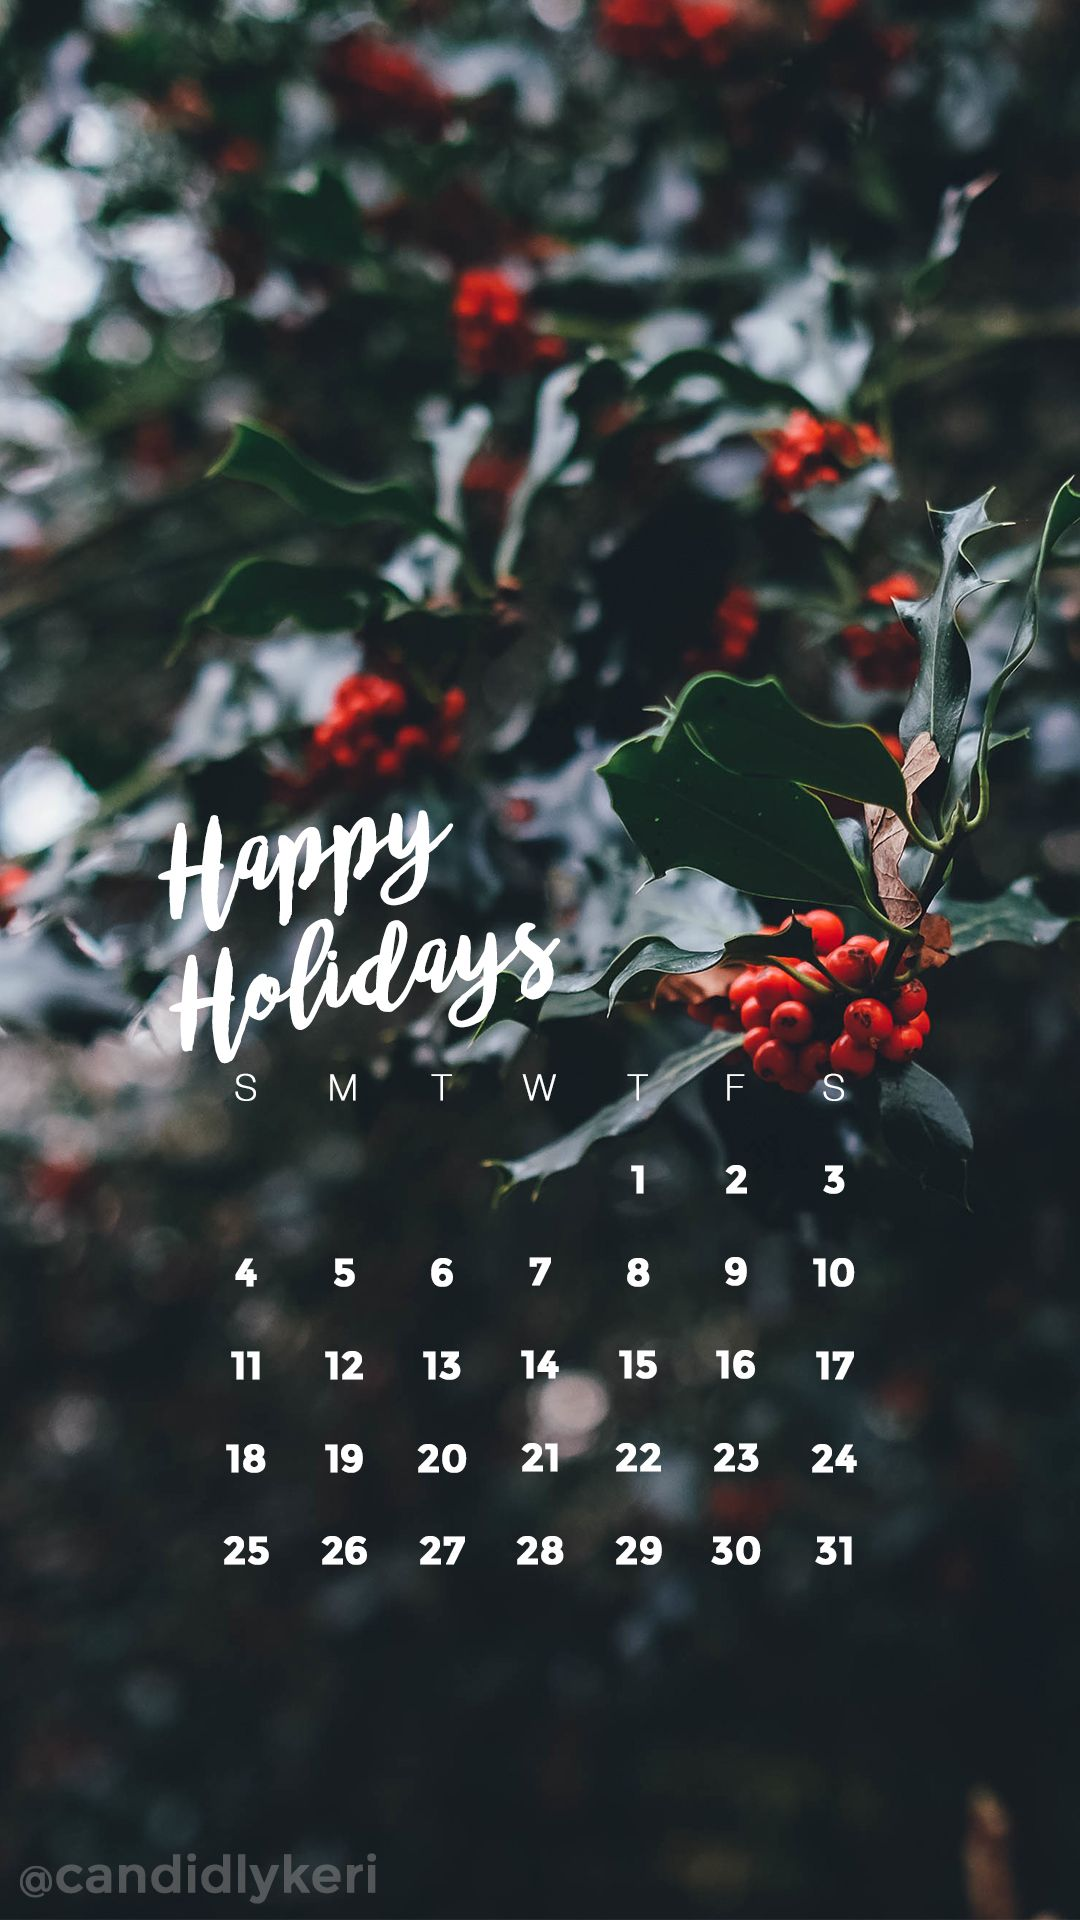 Happy Holiday S Holly Christmas Festive December Calendar 2016 Wallpaper You Can Download F Wallpaper Iphone Christmas Christmas Wallpaper Christmas Lockscreen